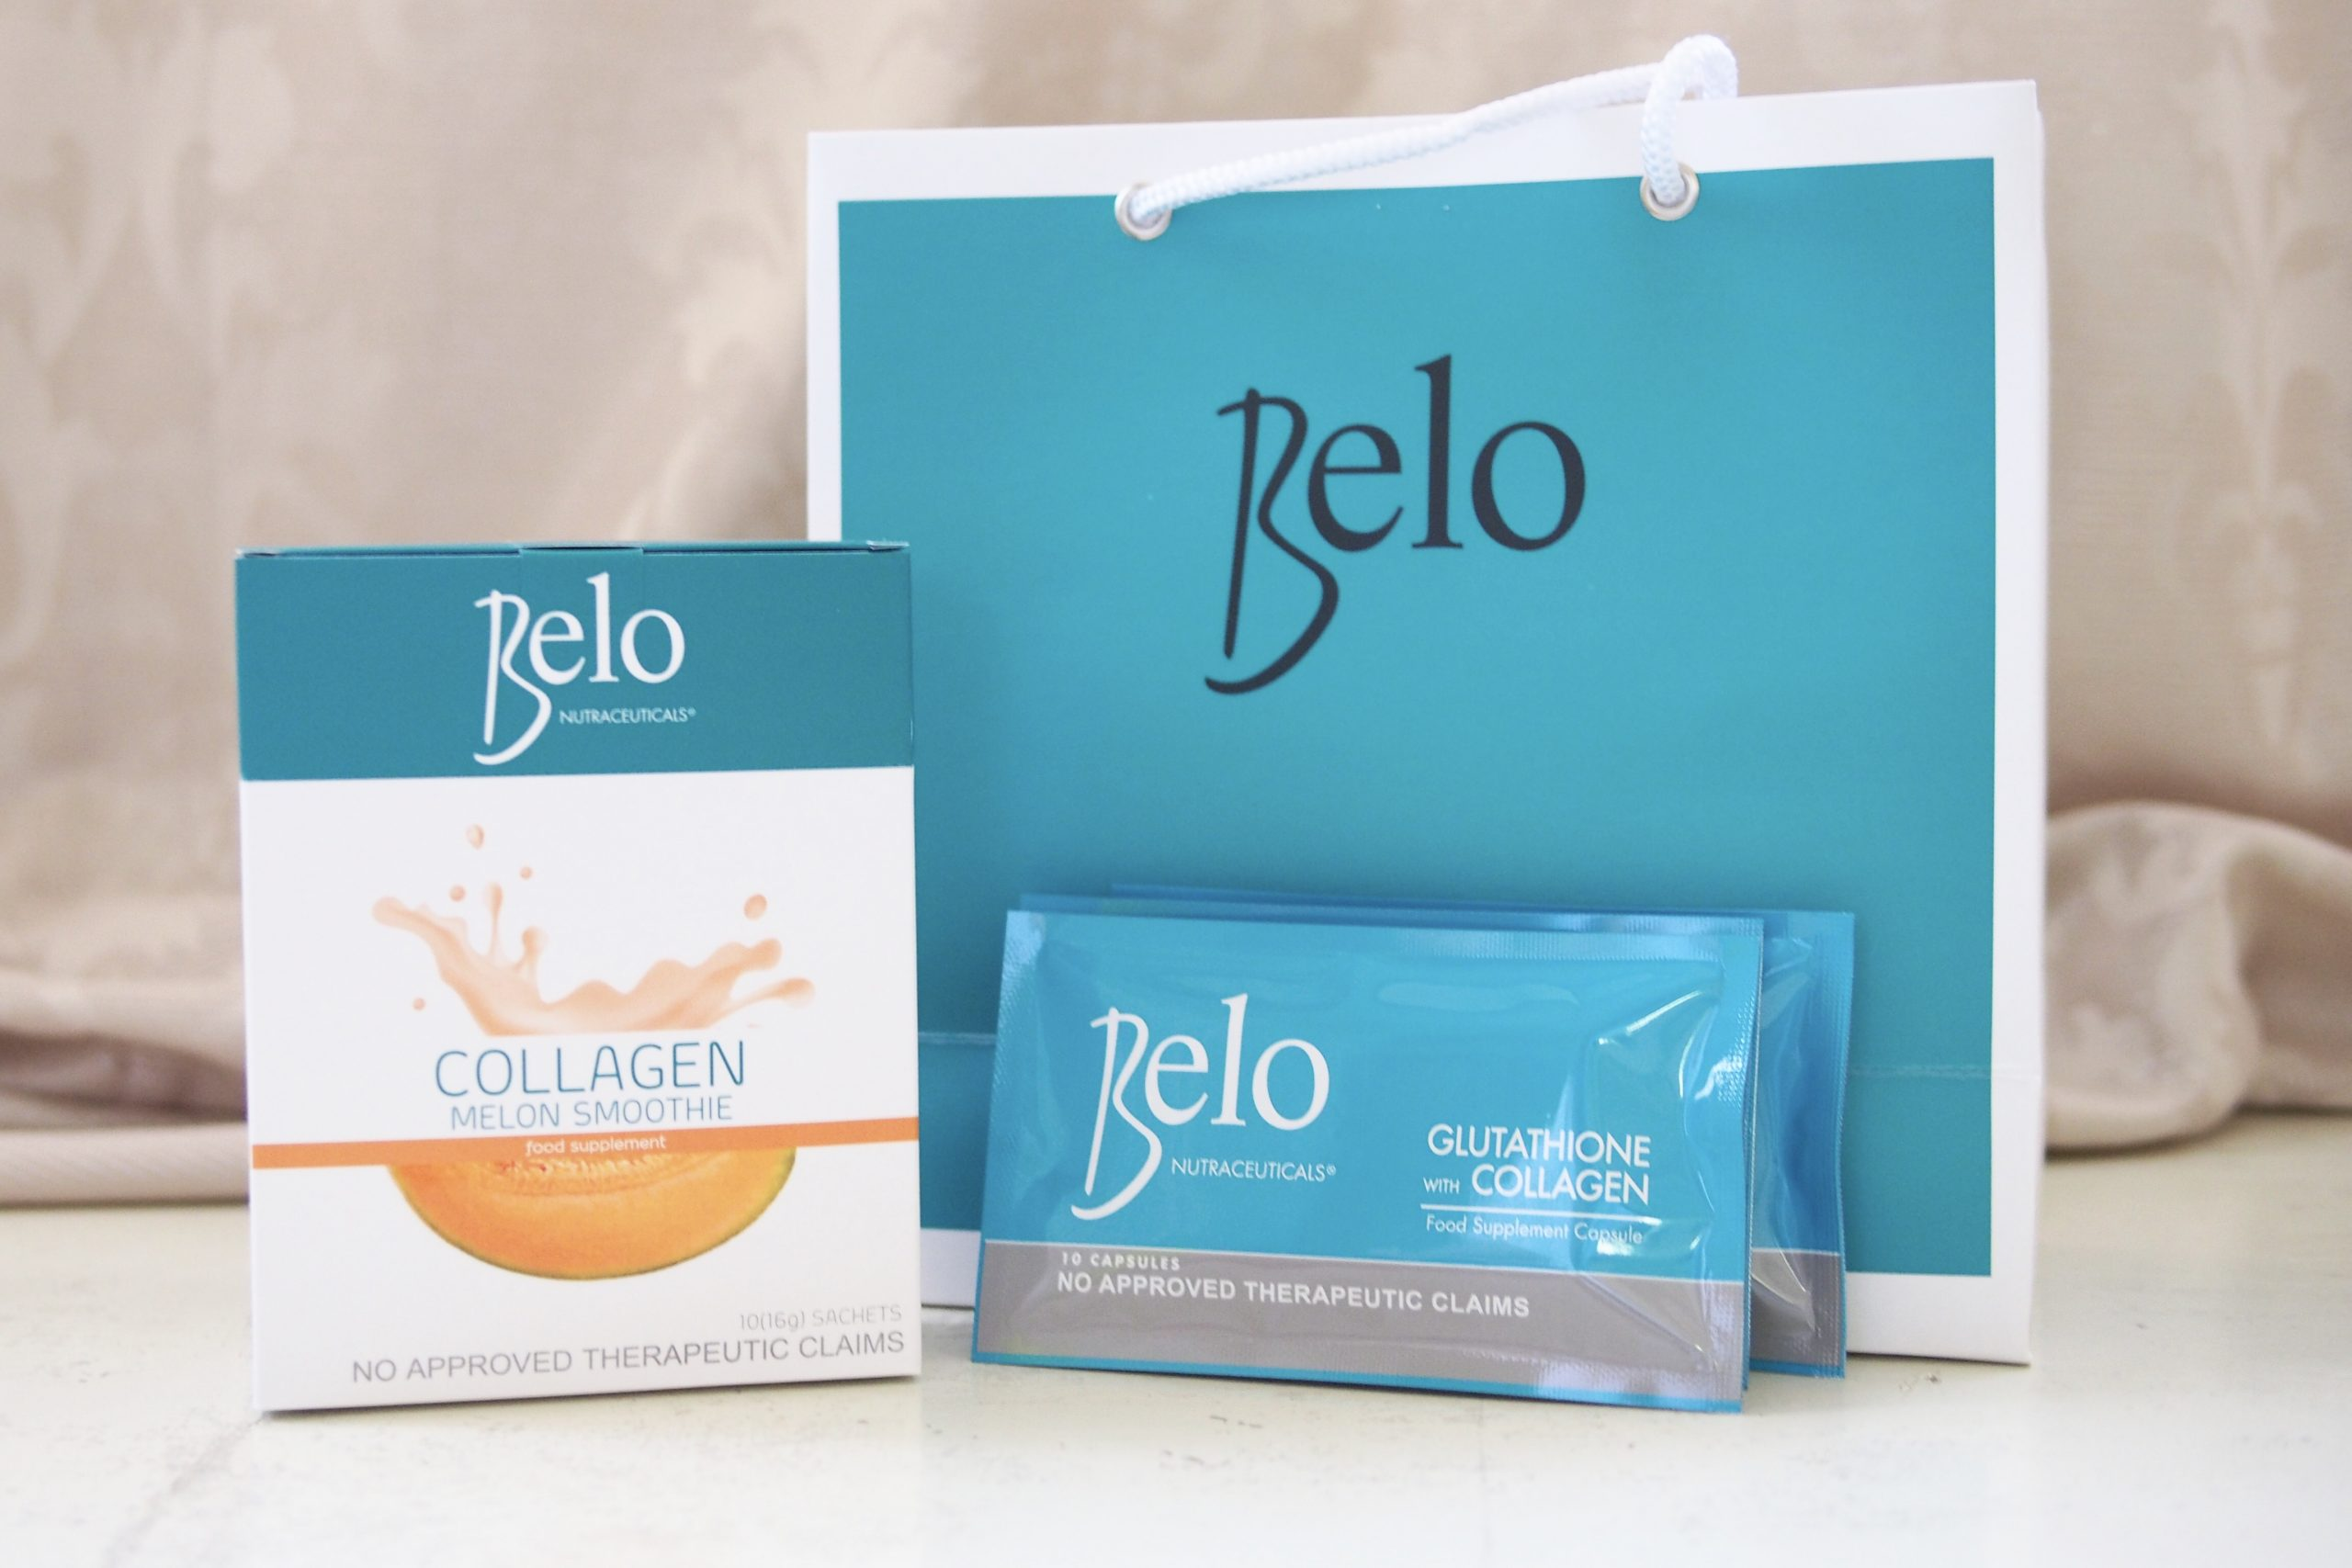 Shopee 9.9: Belo Essentials joins the Super Shopping Day